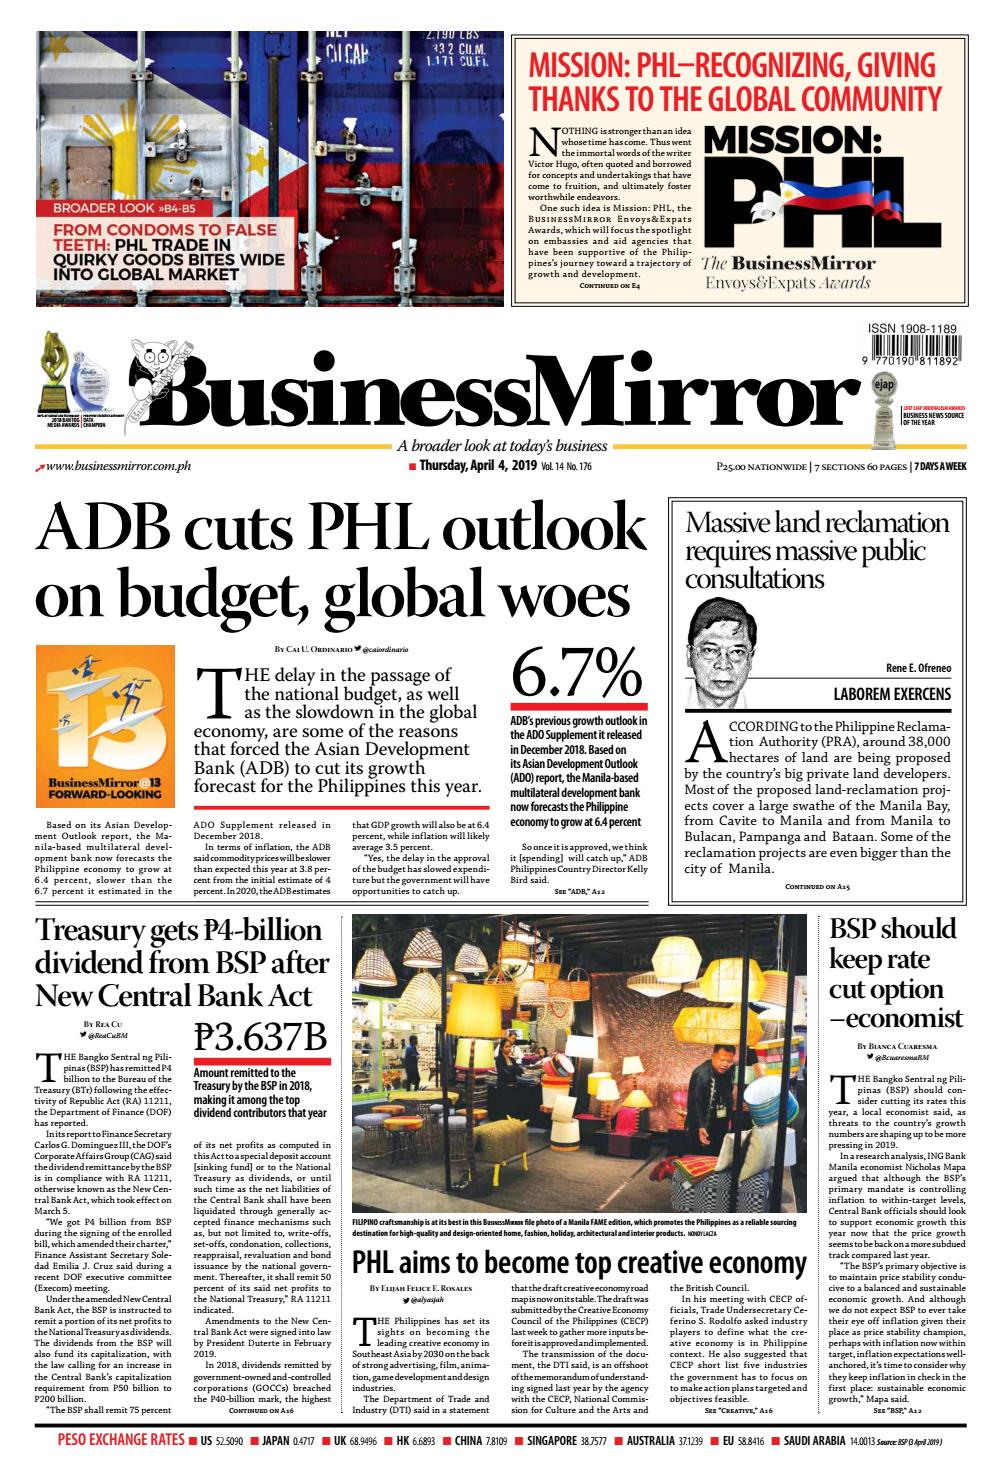 BusinessMirror April 04, 2019 by BusinessMirror - issuu